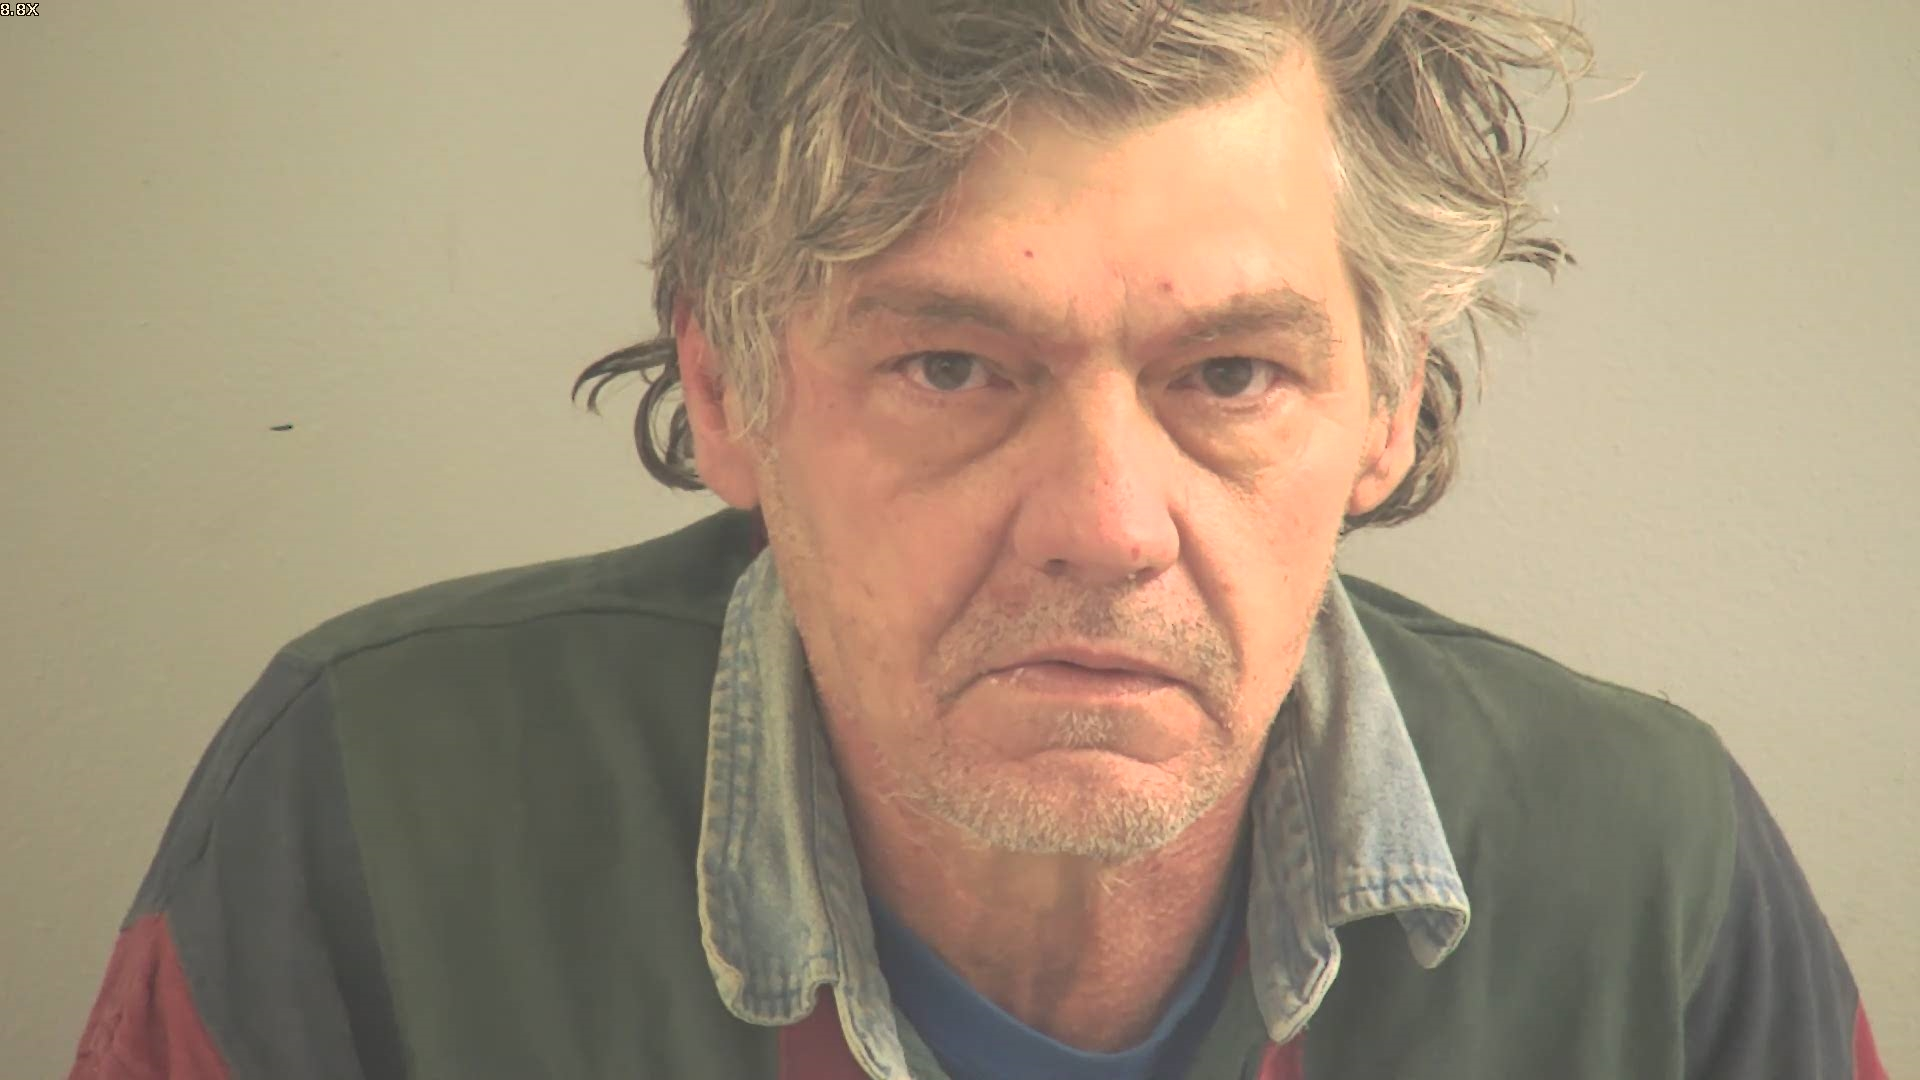 Russellville man arrested on meth charges